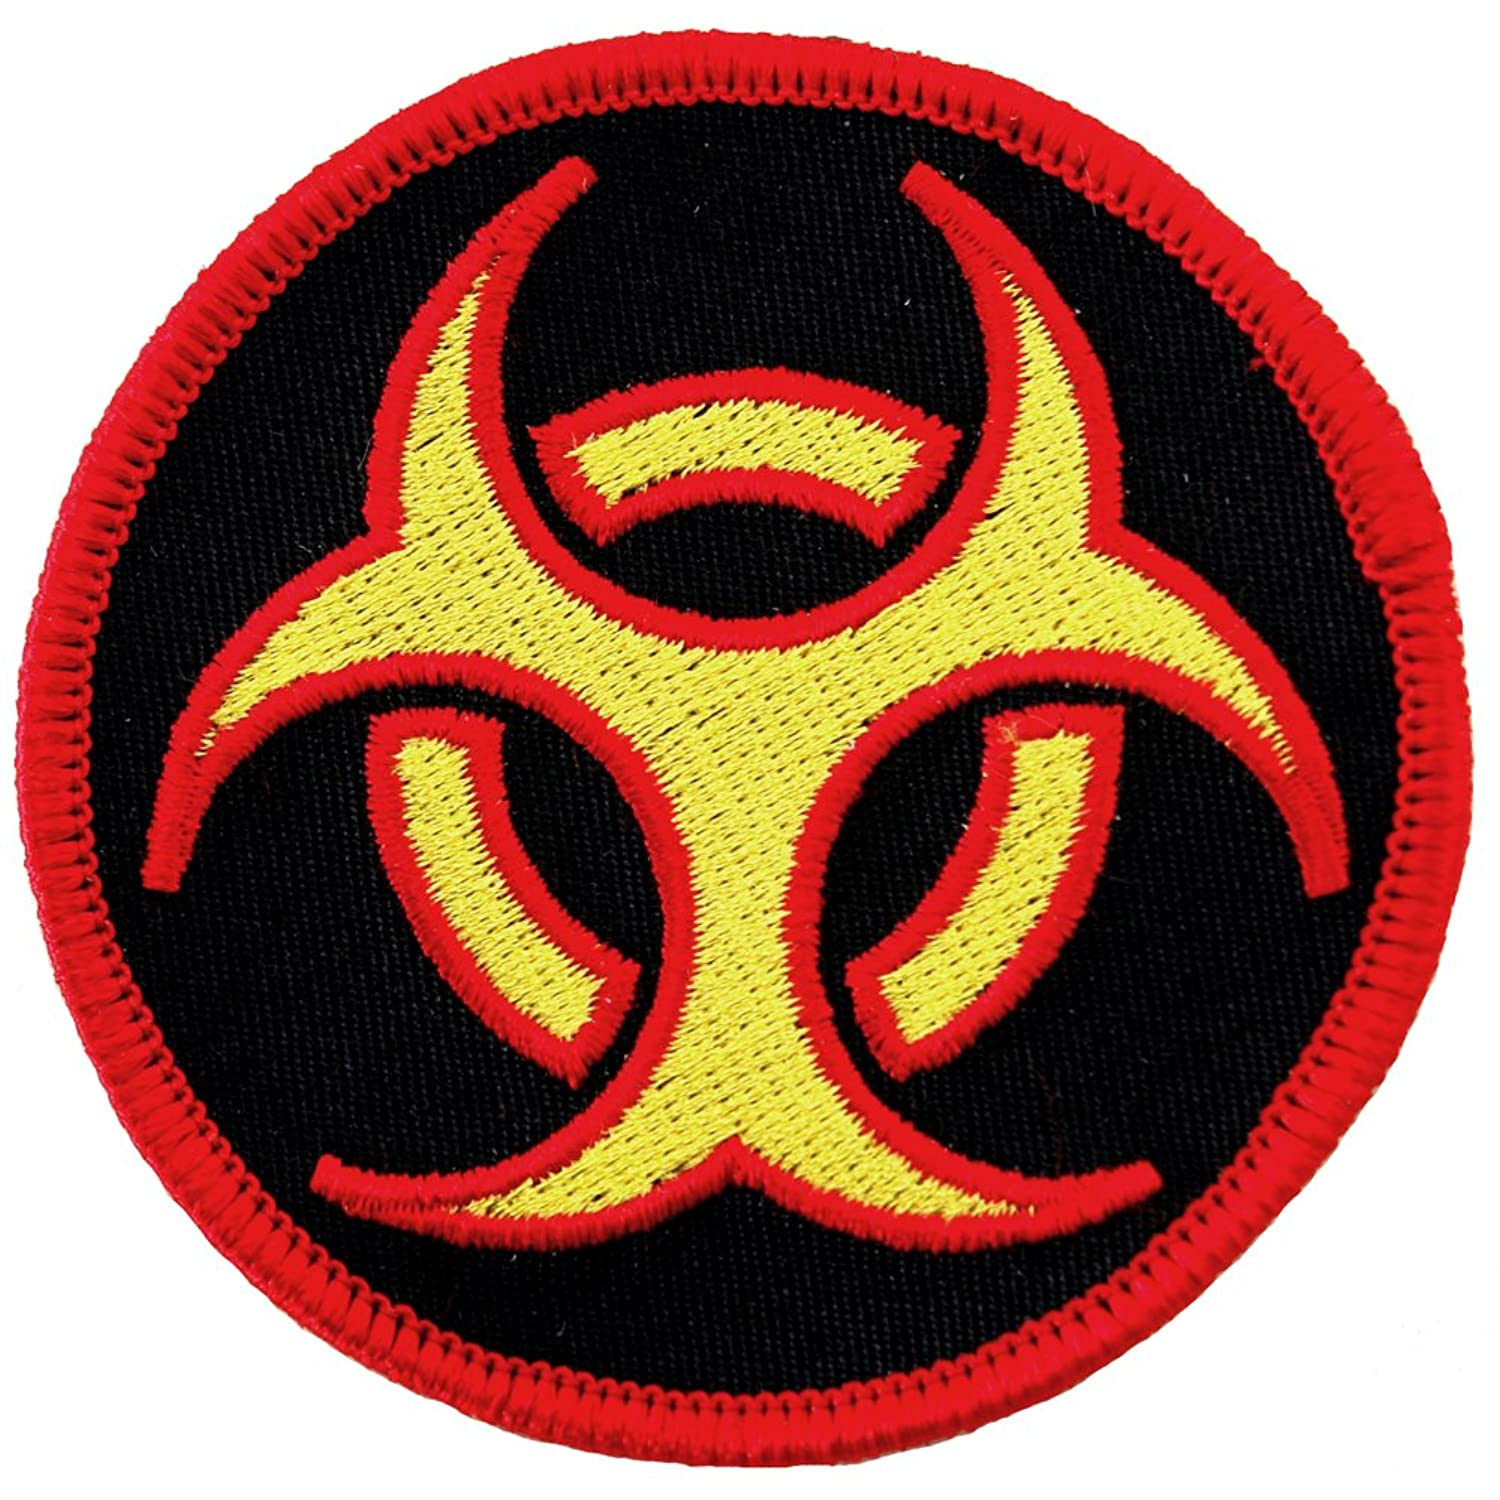 Biohazard symbol embroidered patch iron on danger symbol multi biohazard symbol embroidered patch iron on danger symbol multi colored logo at amazon womens clothing store biocorpaavc Images